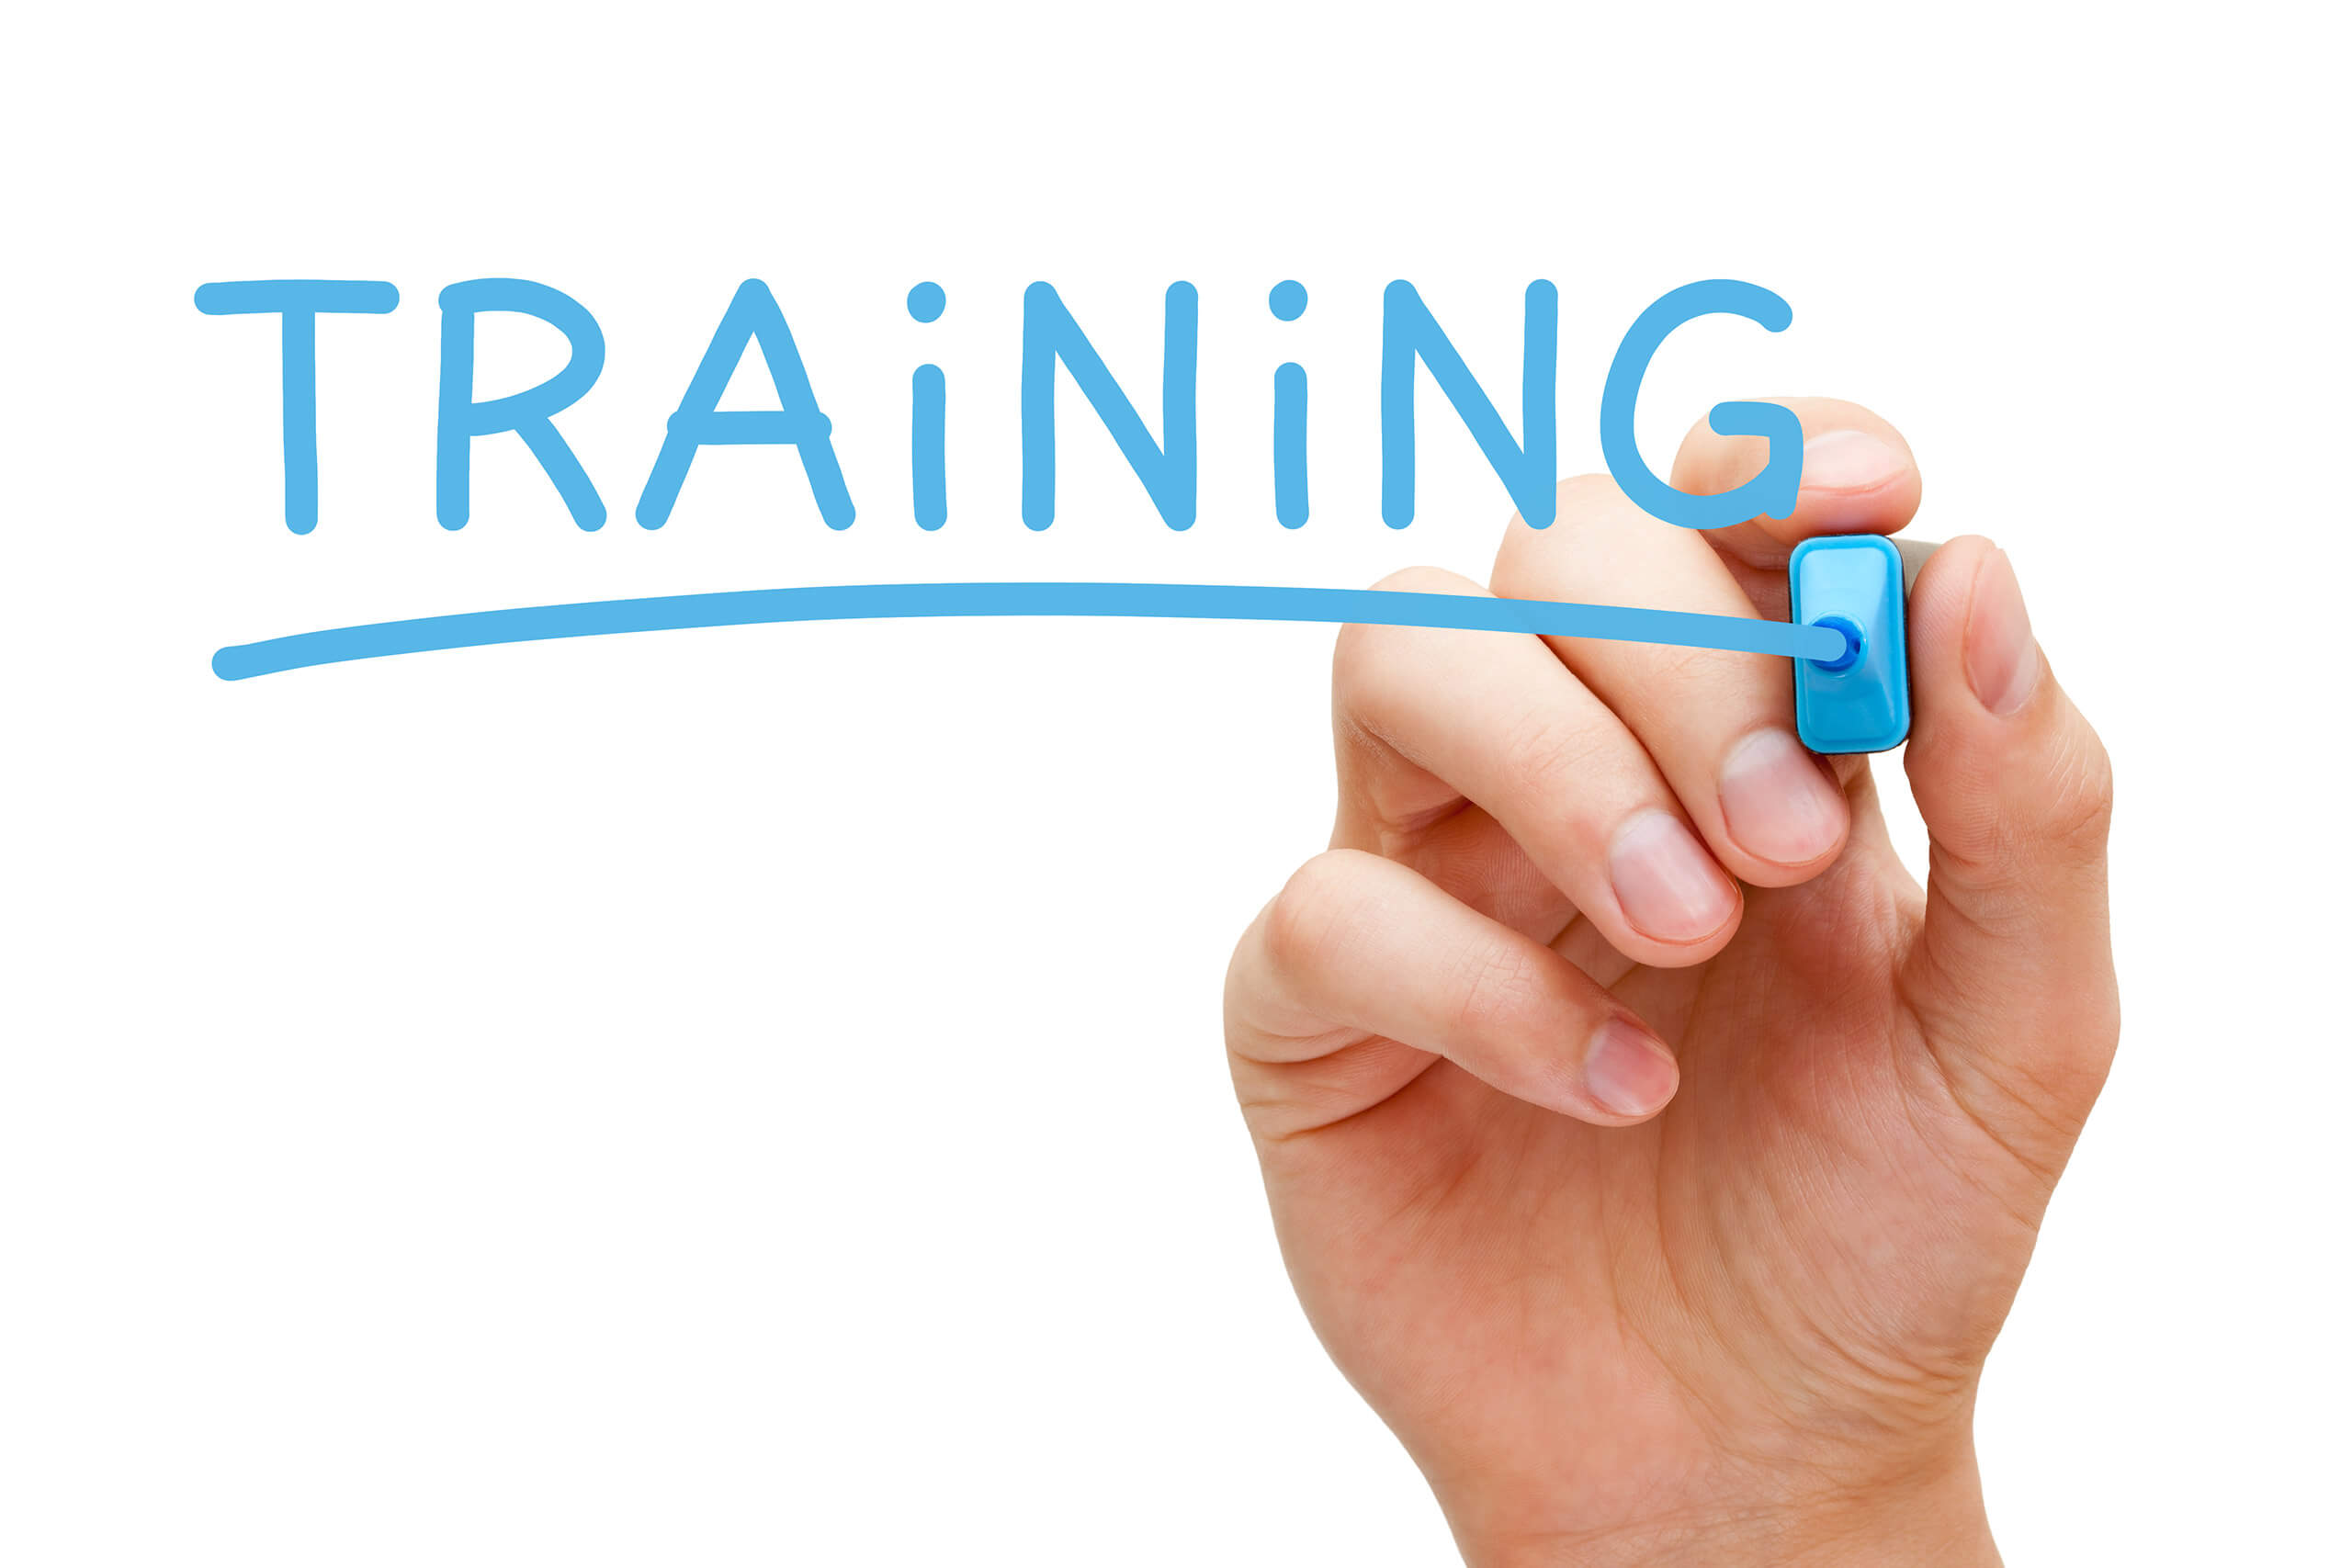 Oracle Training Services